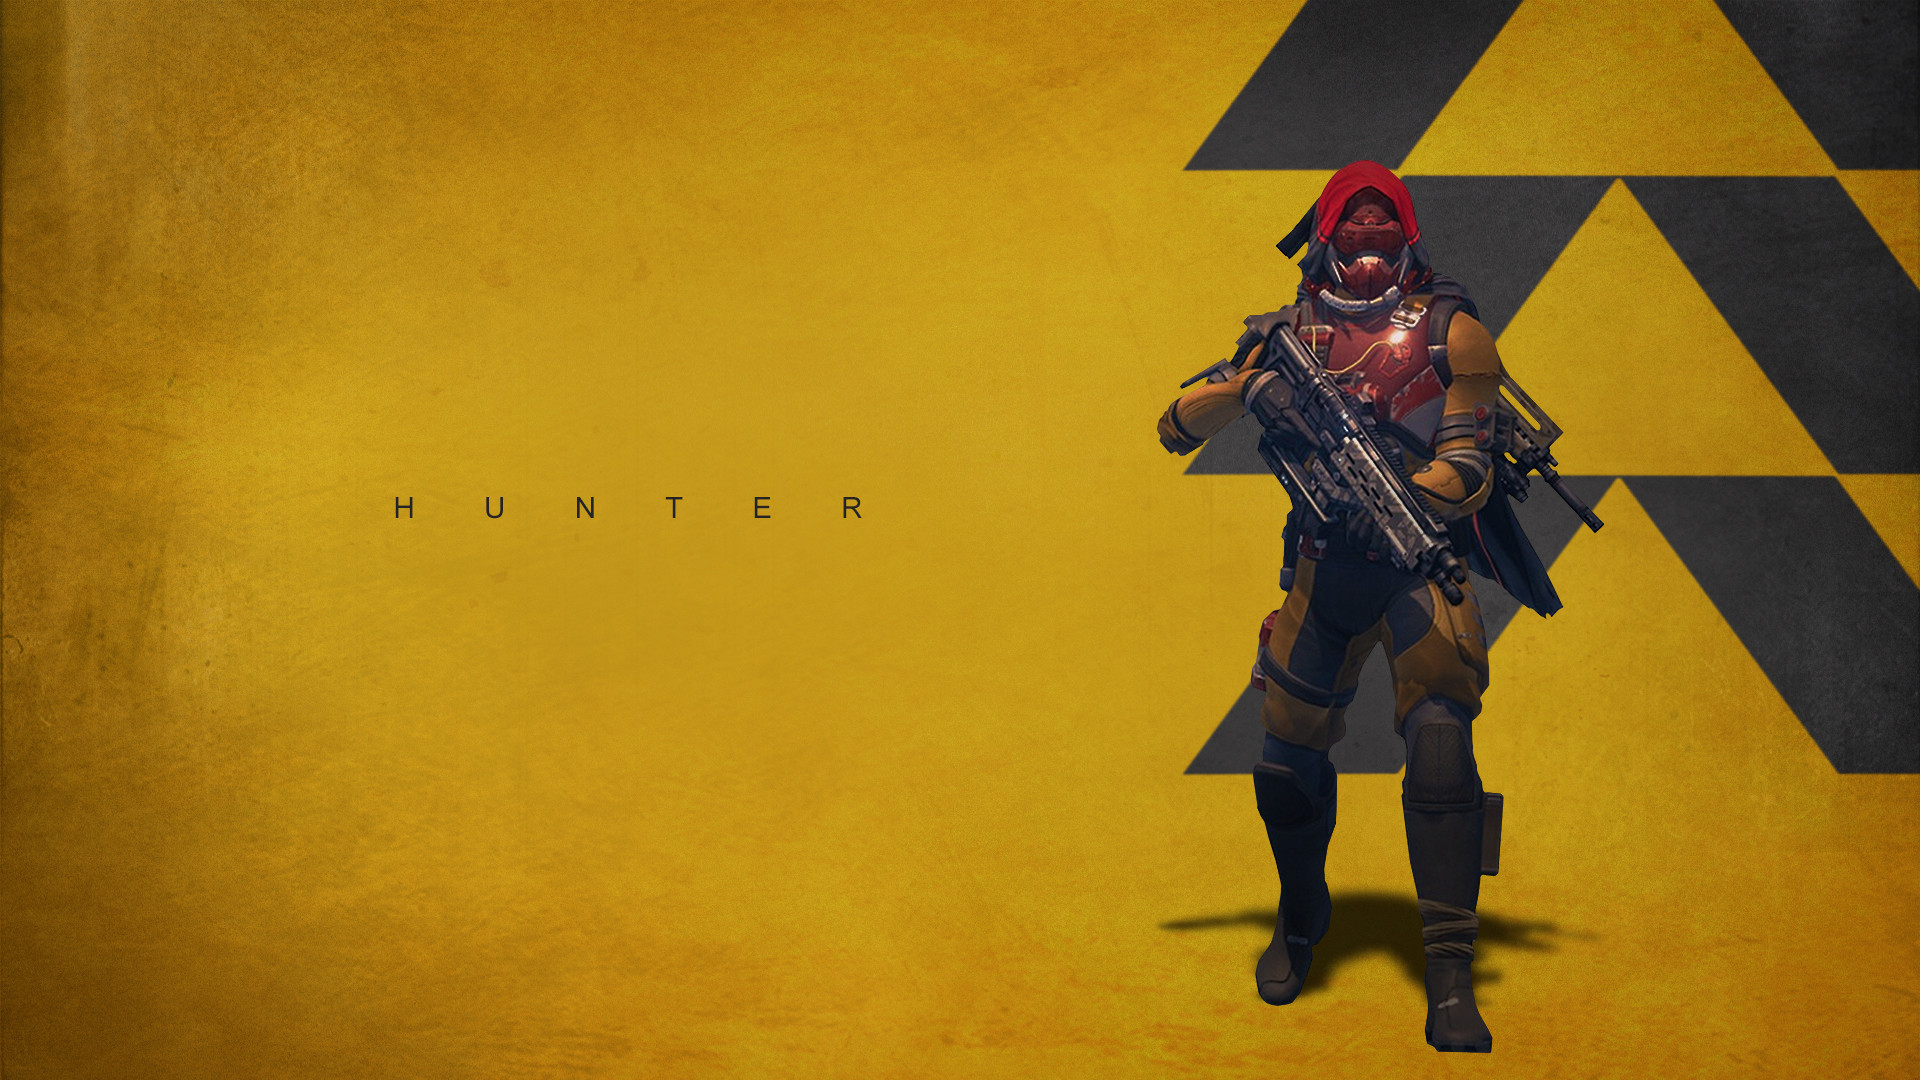 1920x1080 Hunter - Top FPS Game 2014 Destiny HD Wallpaper | Games | Pinterest | Fps  games and Destiny hunter